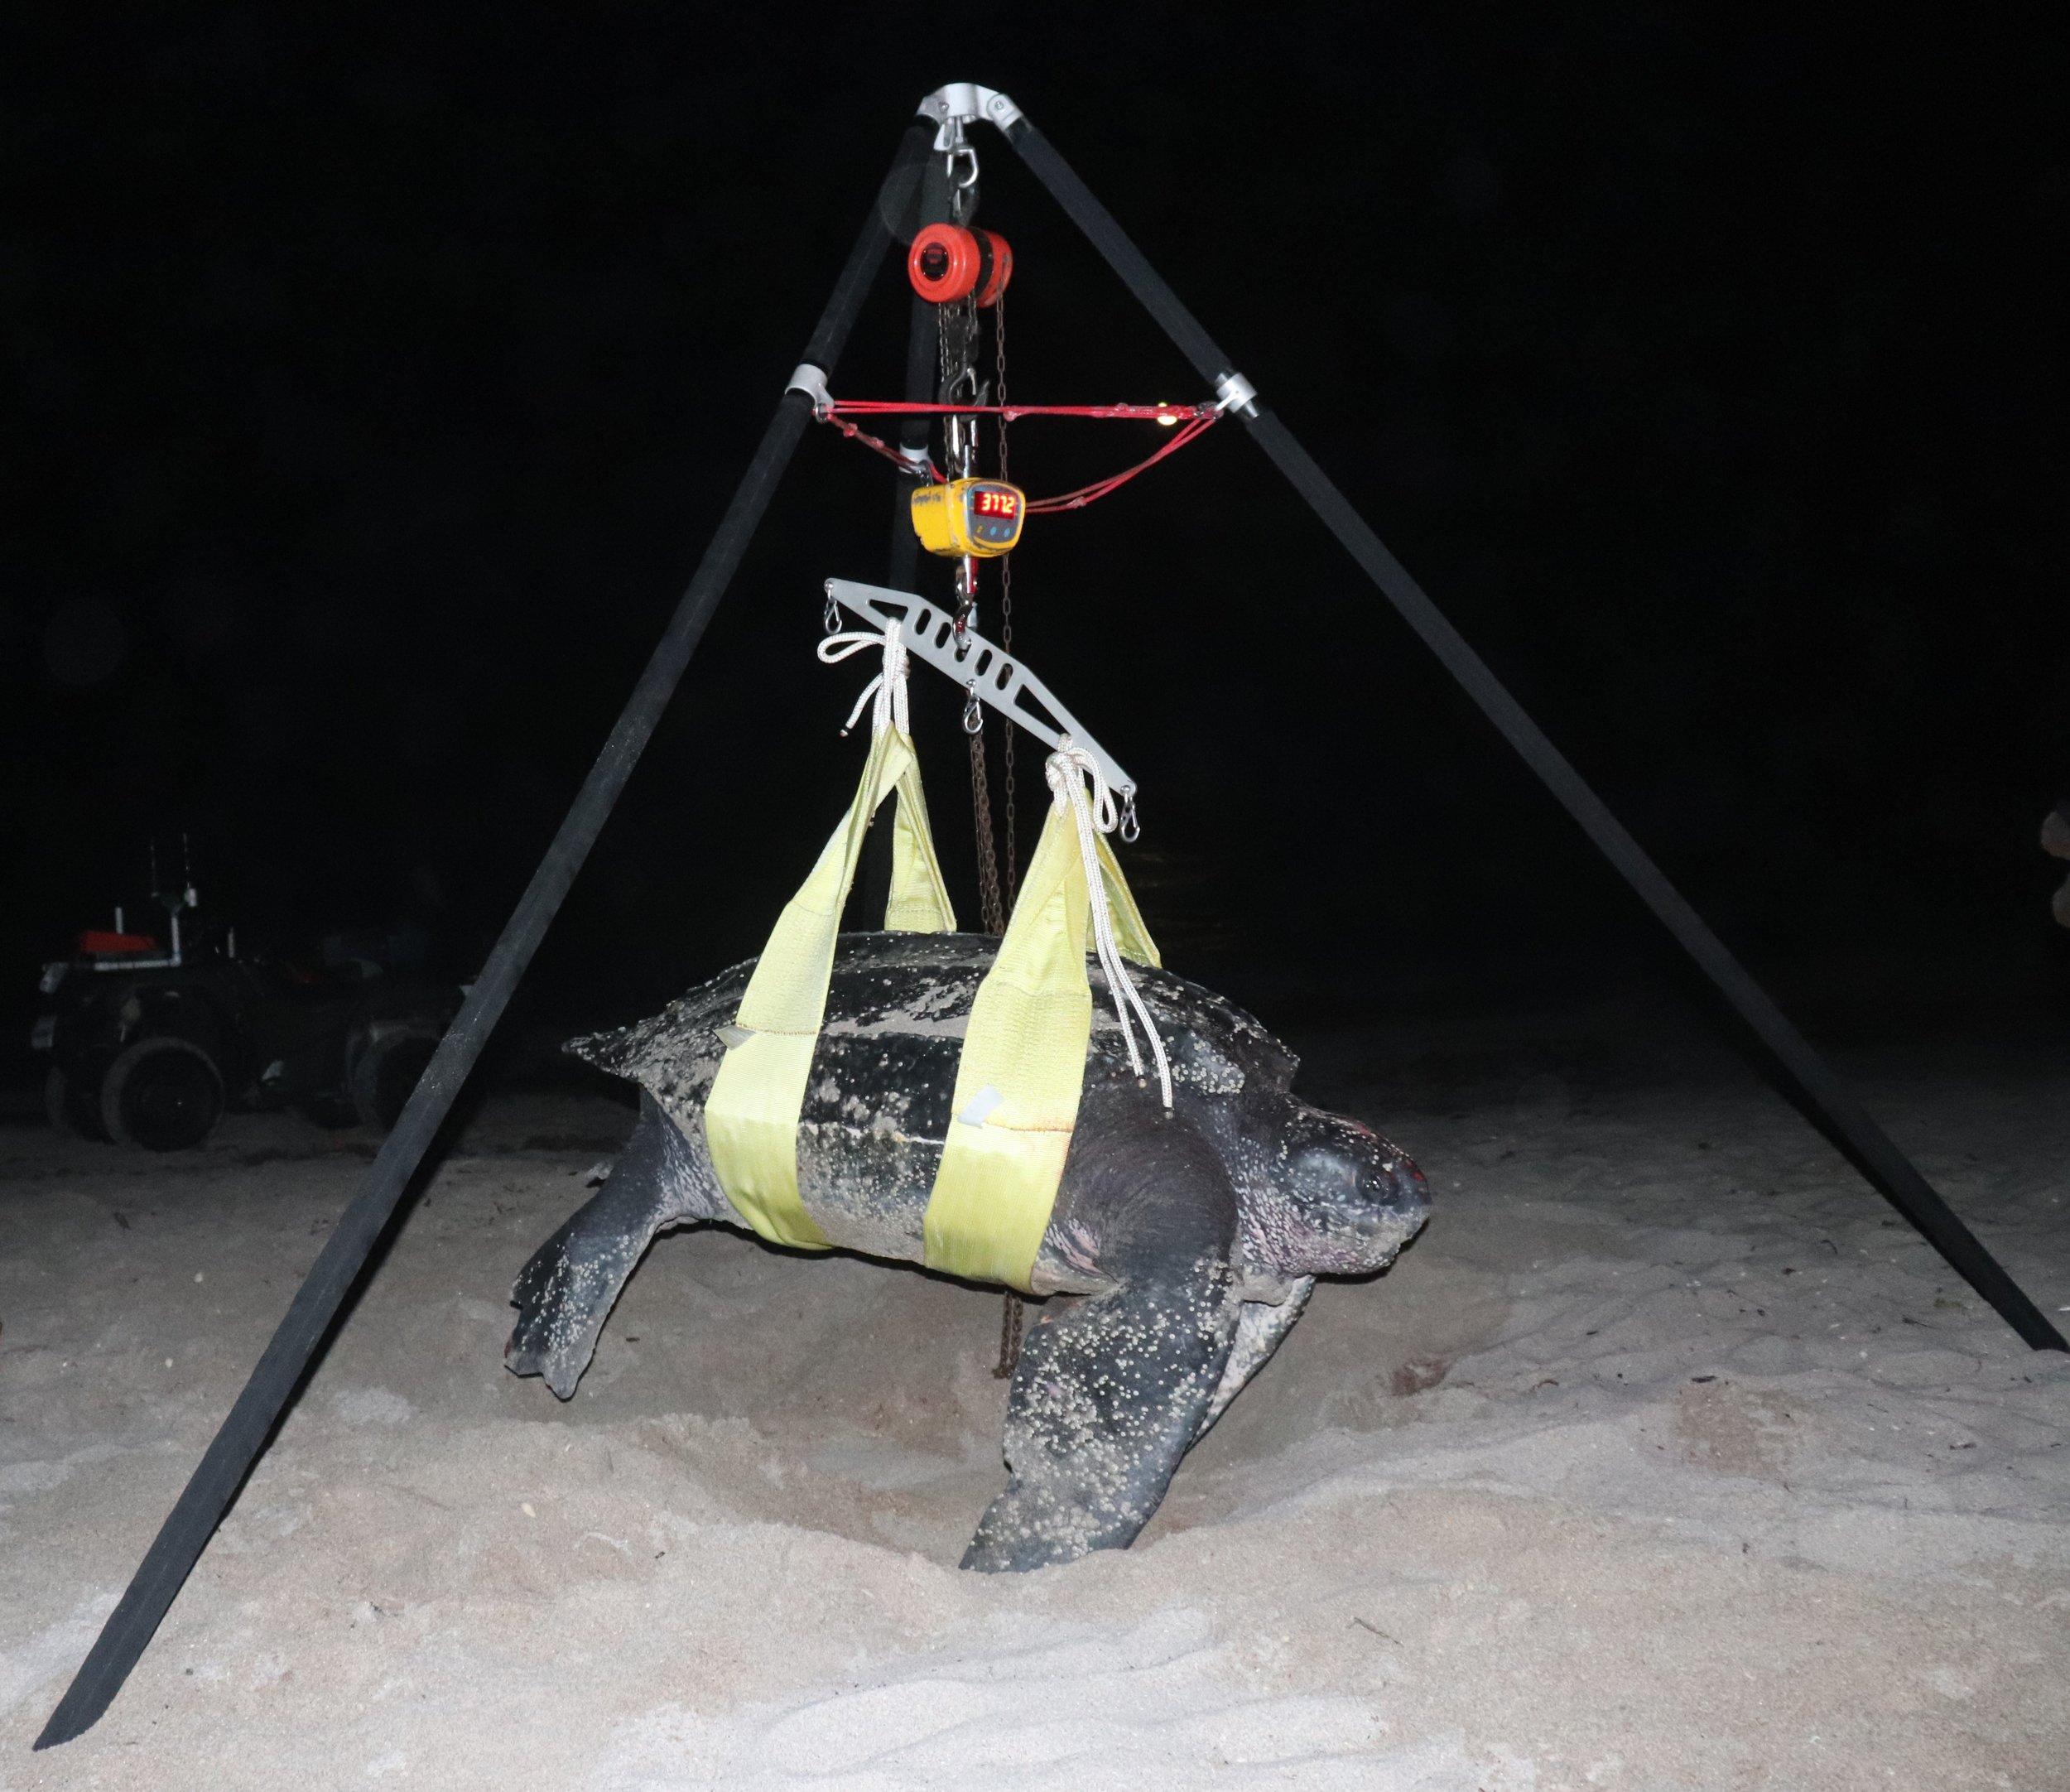 Leatherback turtle sling suspended from tripod to obtain body weight. Note turtle weight after subtracting the strap weight was 370 kg (814 lbs). (Photo: Heather Harris/Upwell).